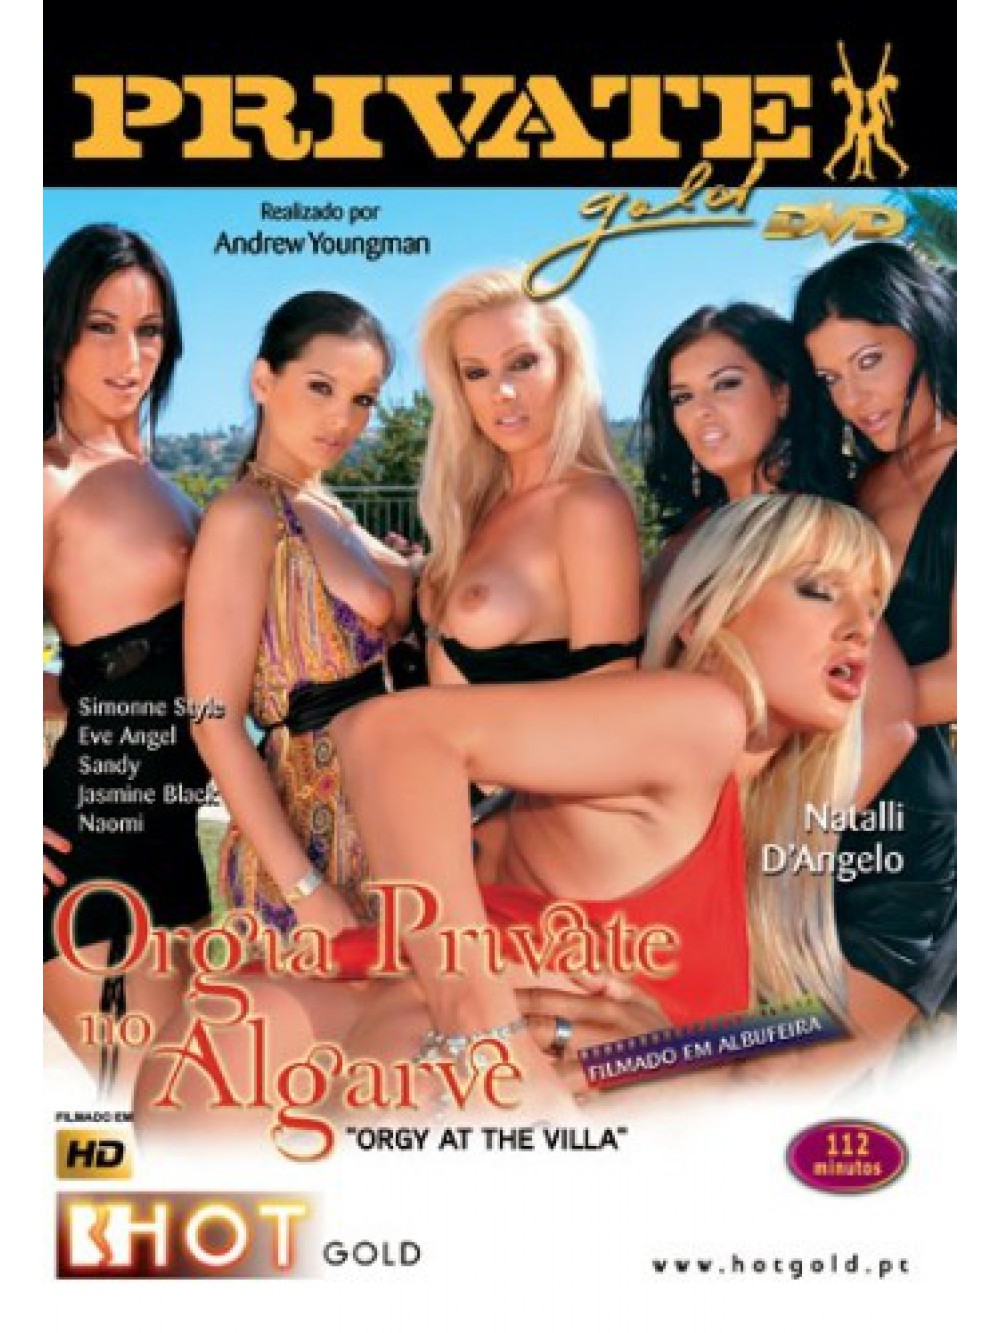 ORGY AT THE VILLA BLU-RAY